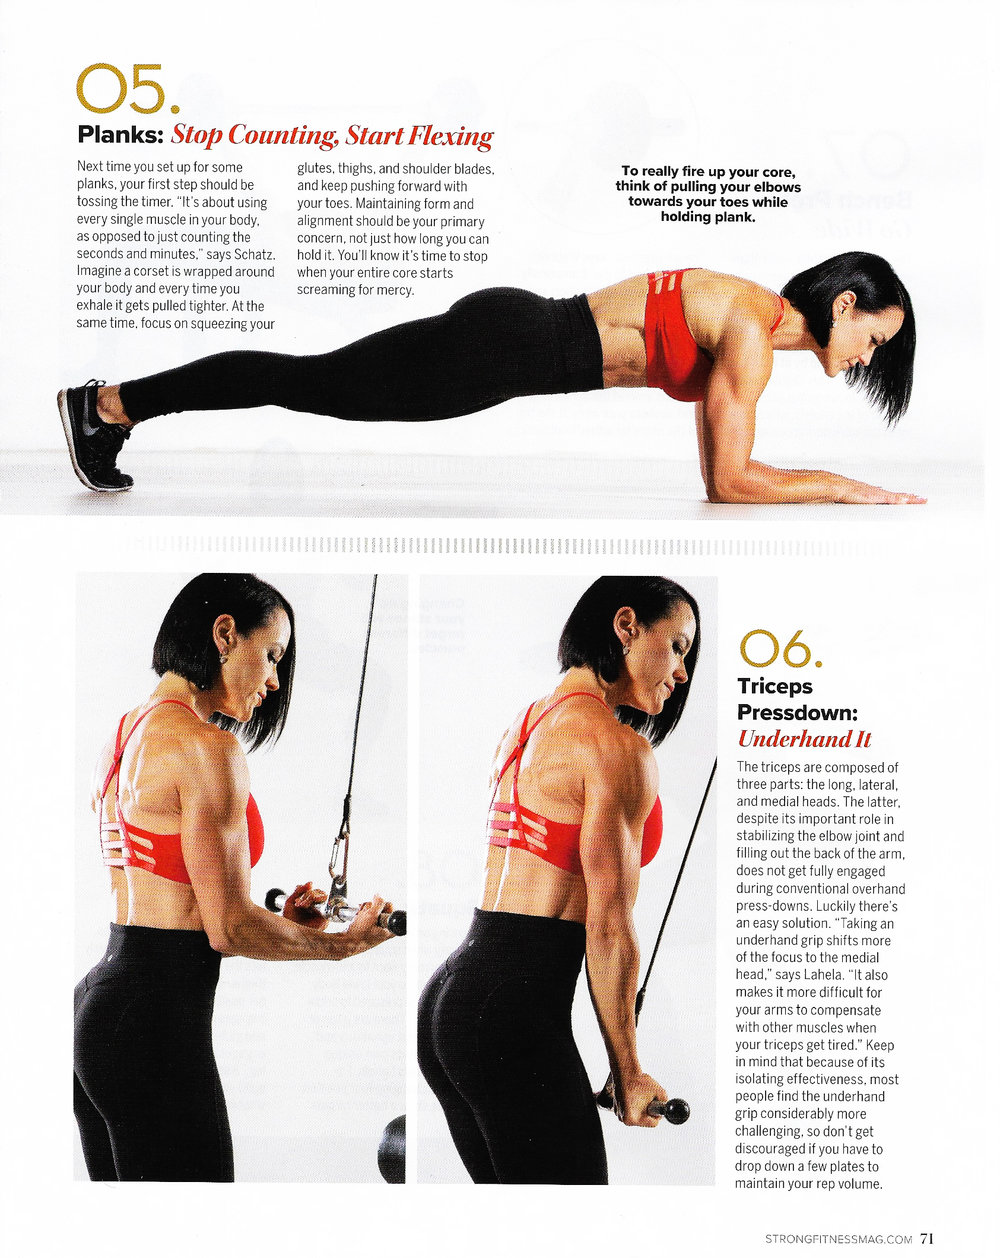 4-article4, strong fitness mag, js.jpg